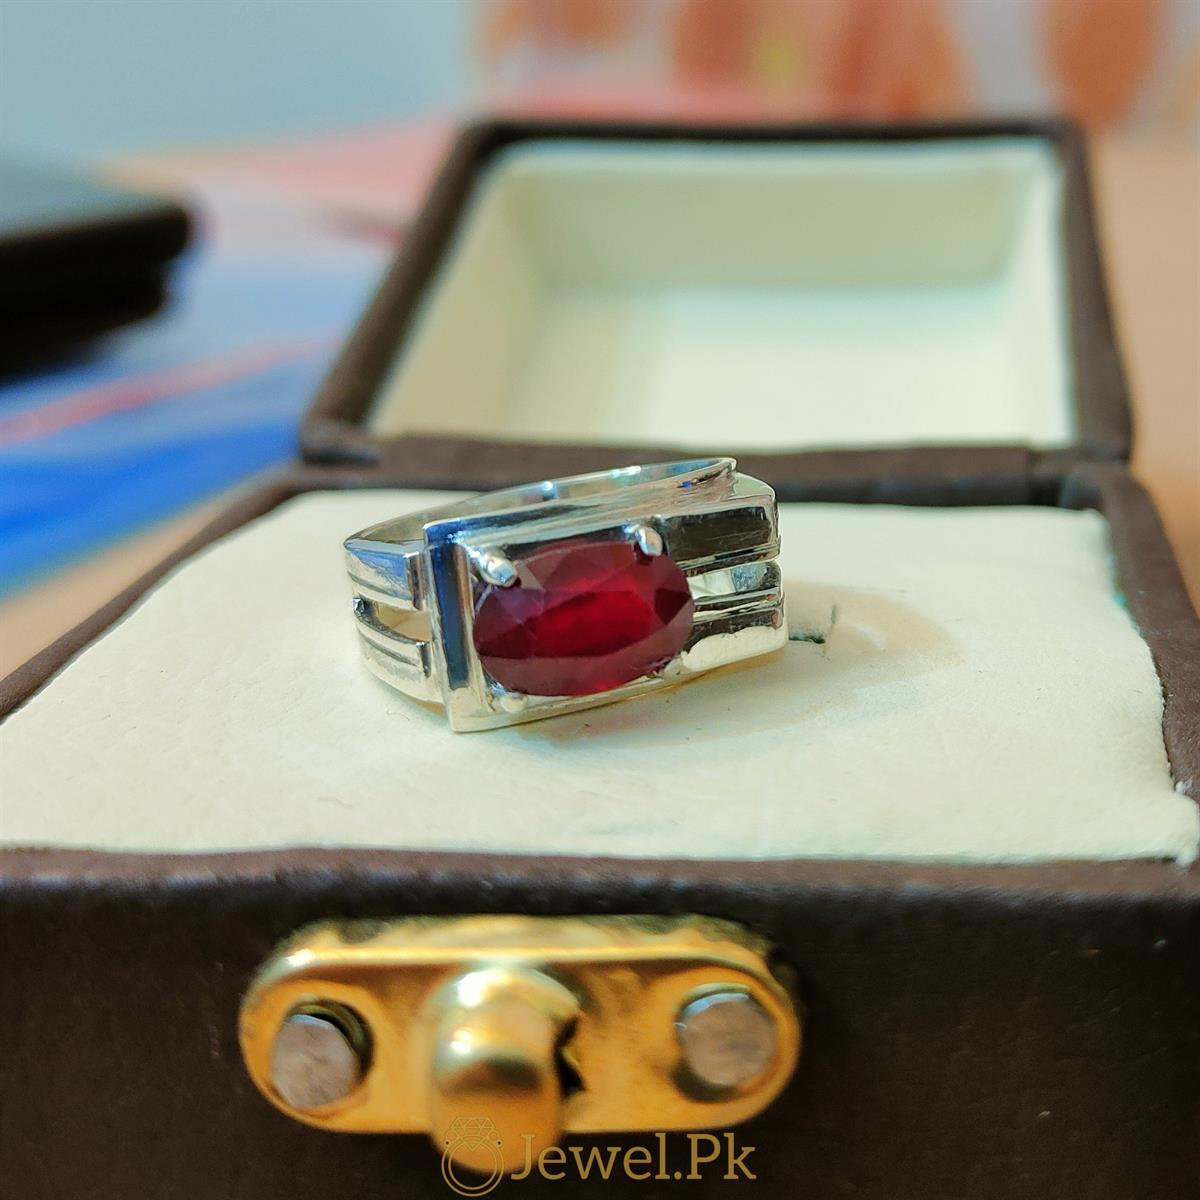 Ruby Ring Yaqoot Silver 925 Ring 3 natural gemstones pakistan + 925 silver jewelry online